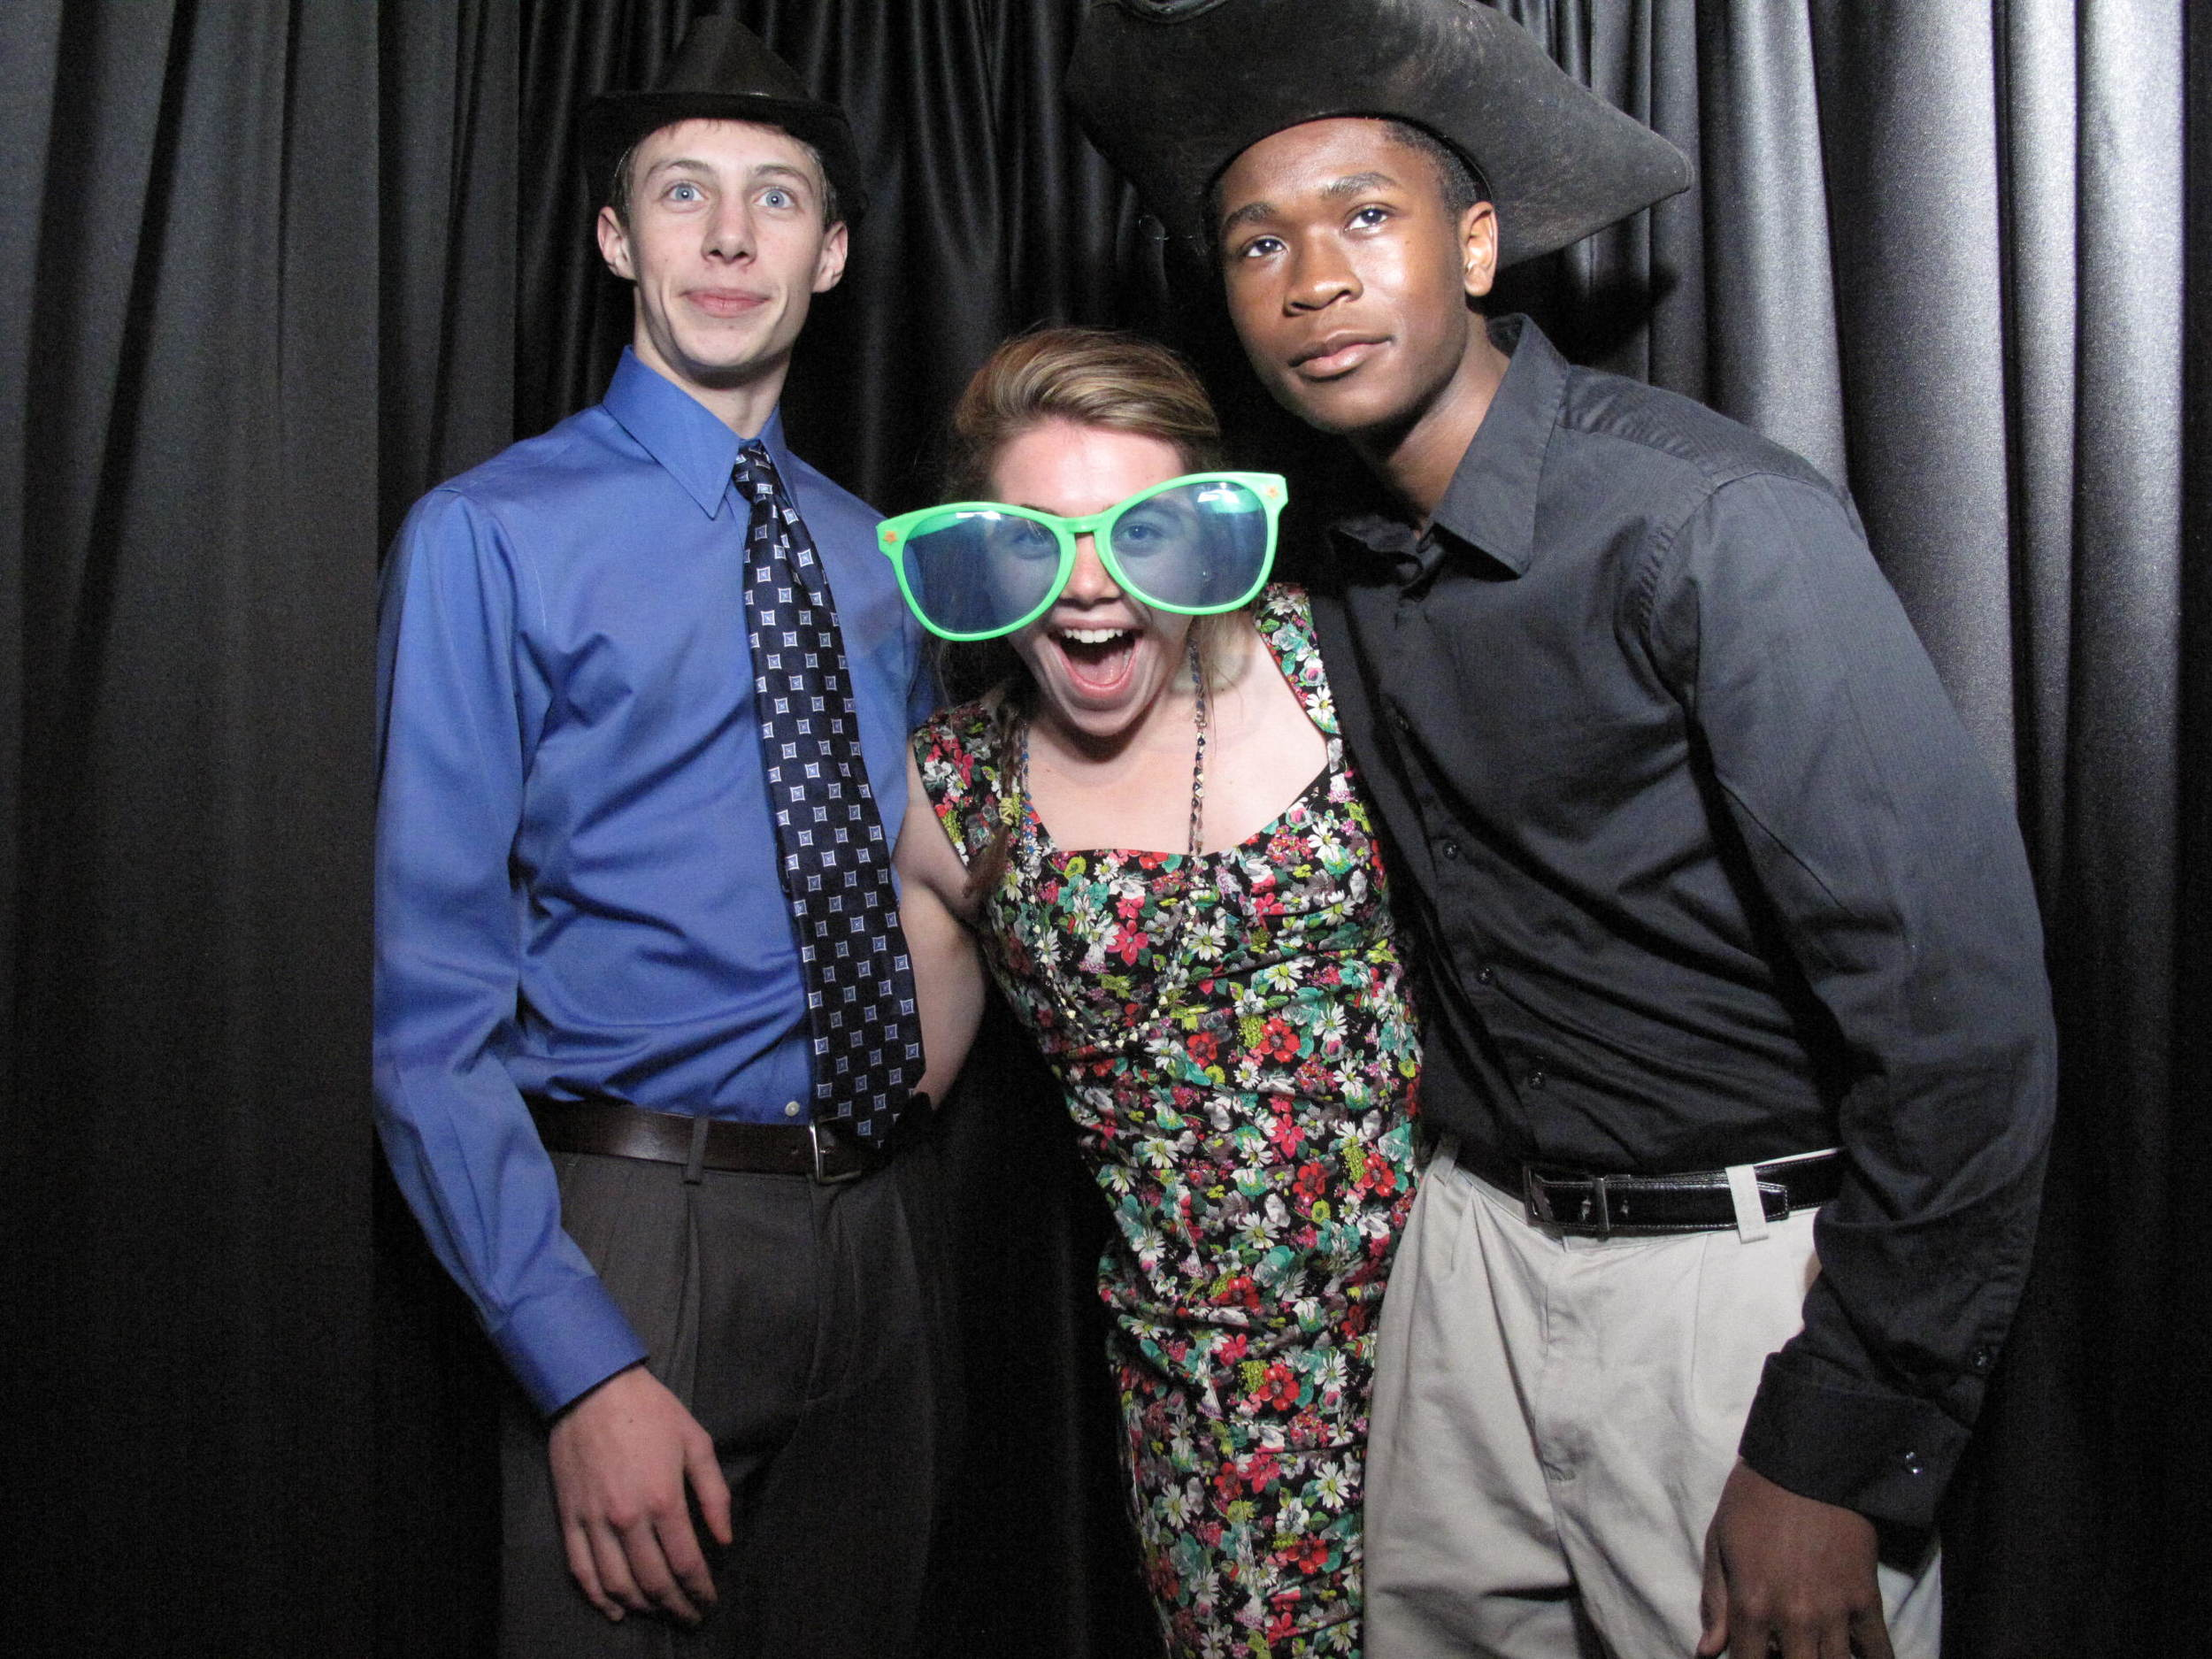 Snapshot Photobooths at the Cranbury Inn in Cranbury, New Jersey